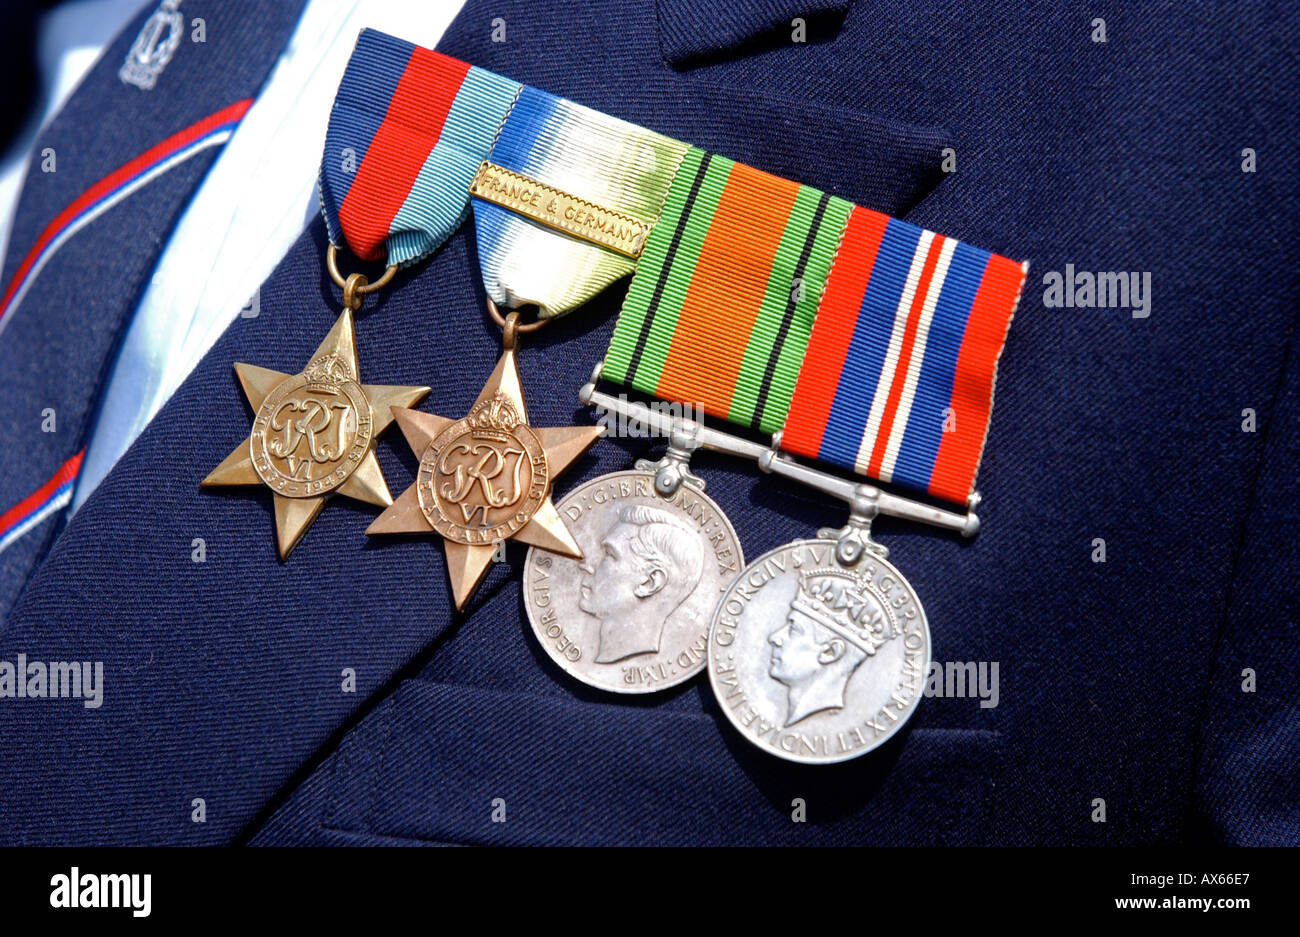 War medals - Stock Image